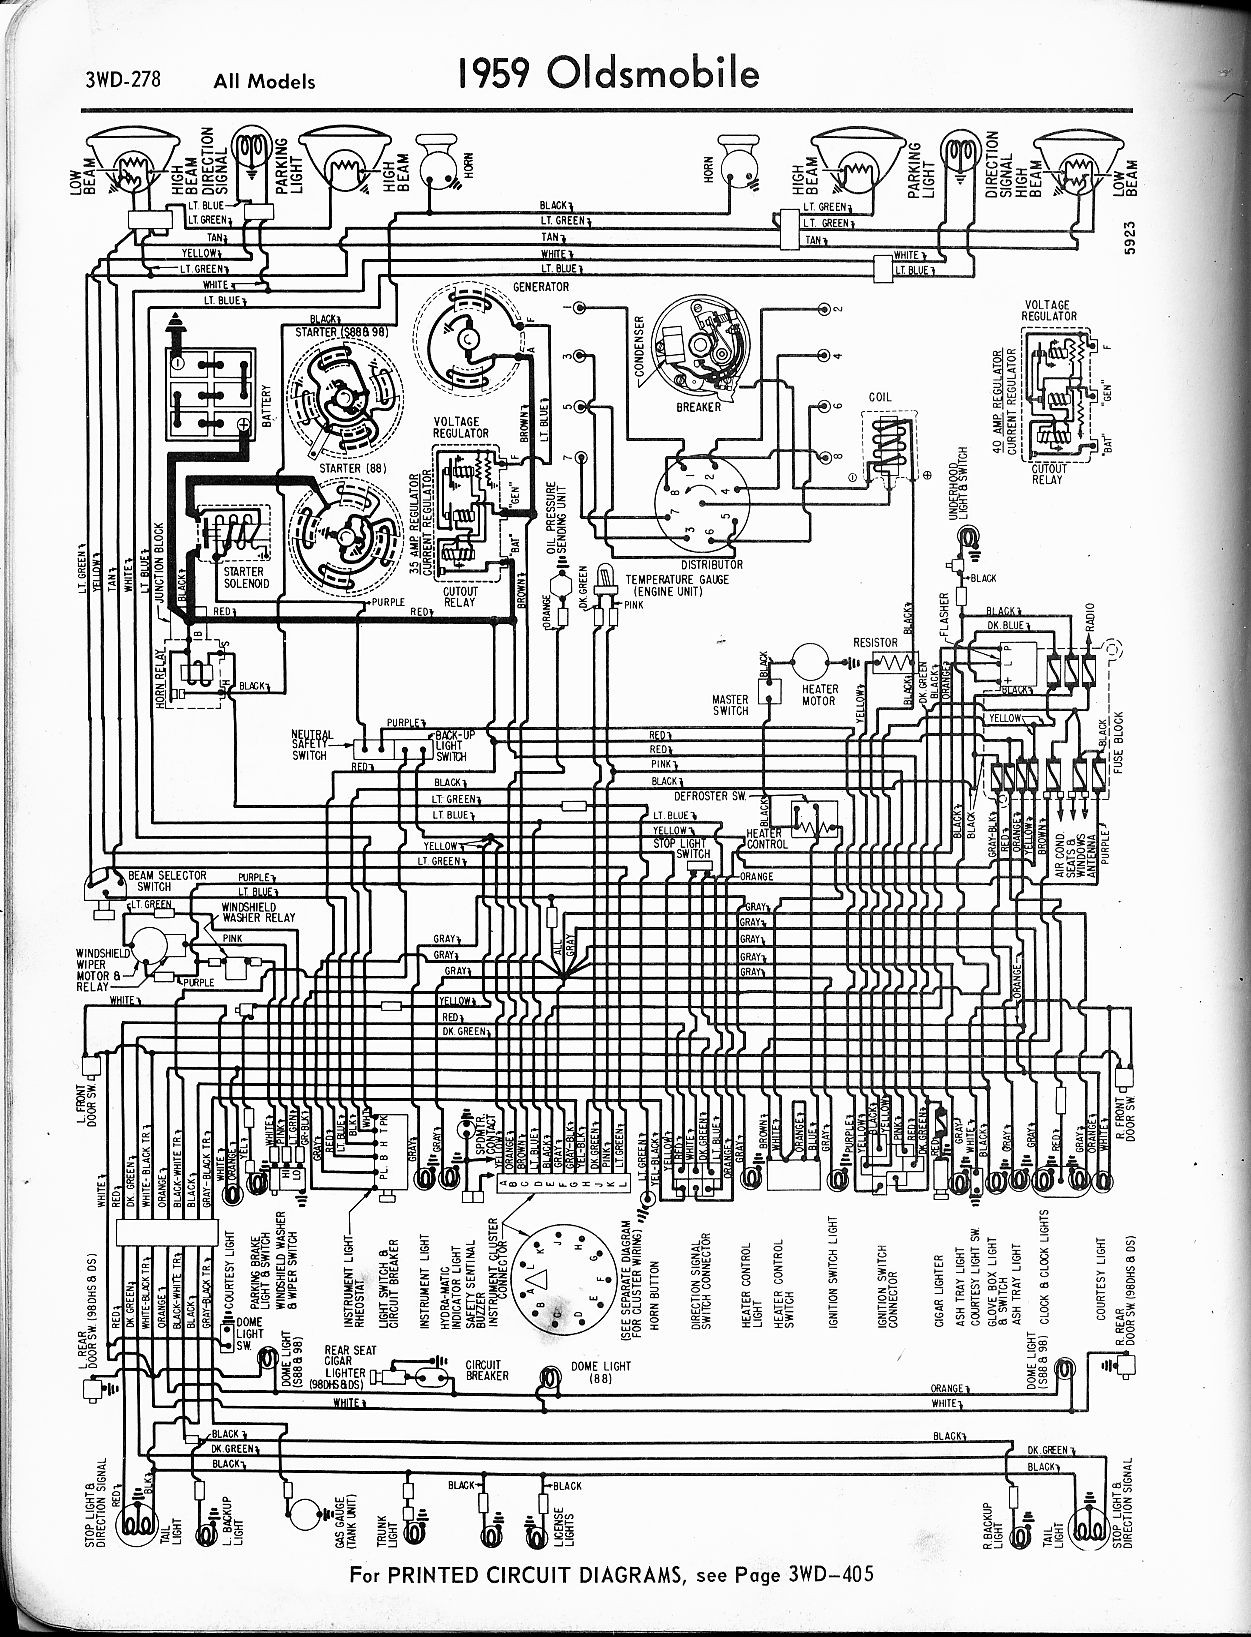 Diagram For A 1994 Oldsmobile Wiring Diagrams Full Version Hd Quality Wiring Diagrams Sitexbubb Disegnoegrafica It